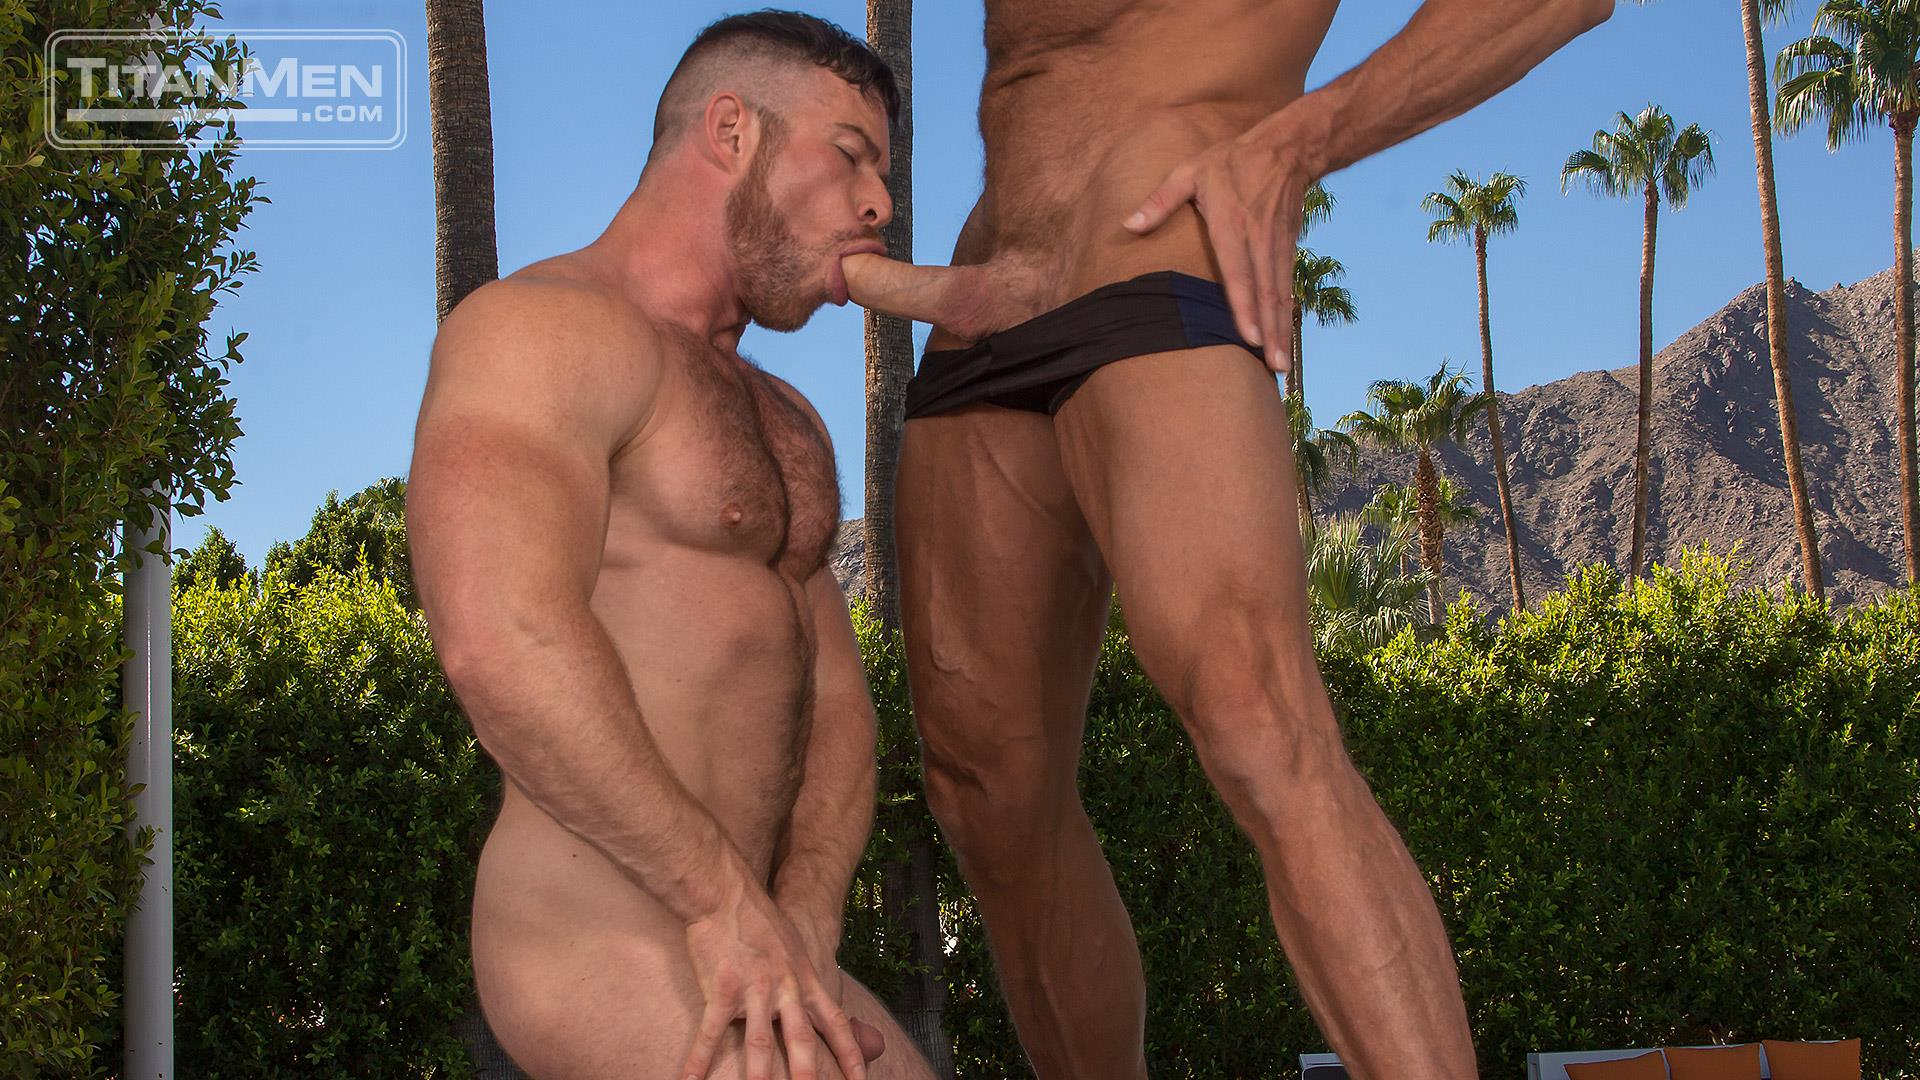 Titan Men Dallas Steele and Liam Knox Hairy Muscle Daddies Fucking 07 Thick Cock Hairy Muscle Hunks Dallas Steele and Liam Knox Fucking